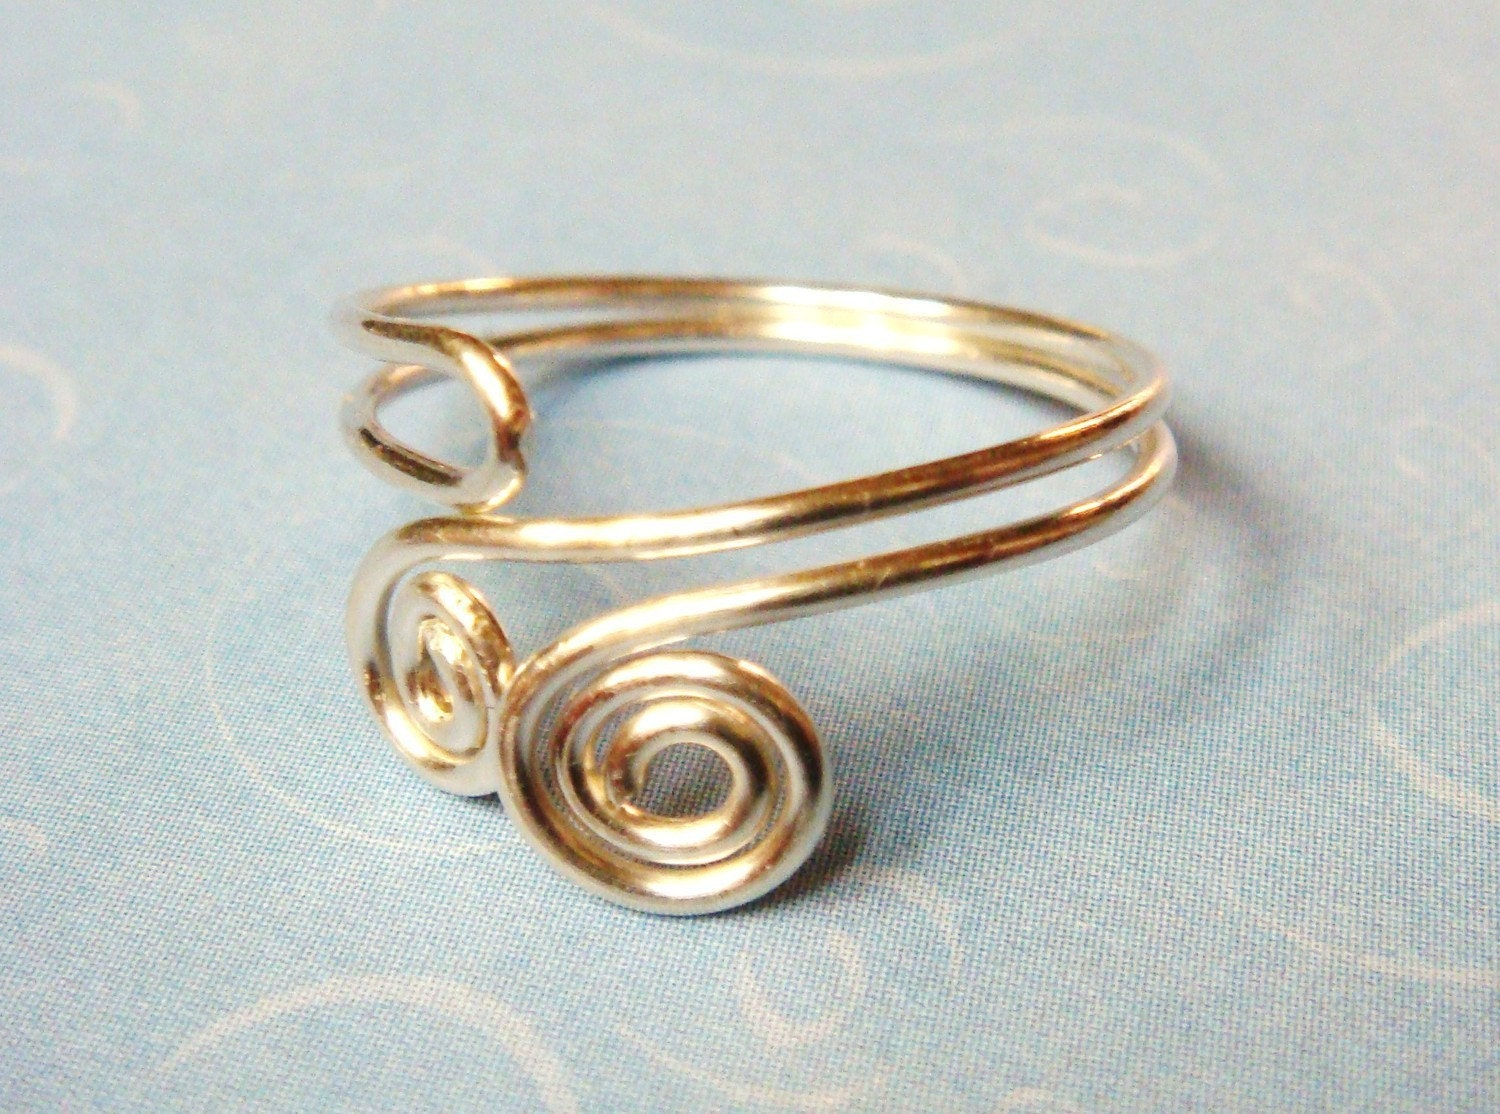 Gold Wire Wrapped Rings Related Keywords Suggestions Handmade Sterling Silver Wrap Tiger Eye Ring By Jandsgems Toe